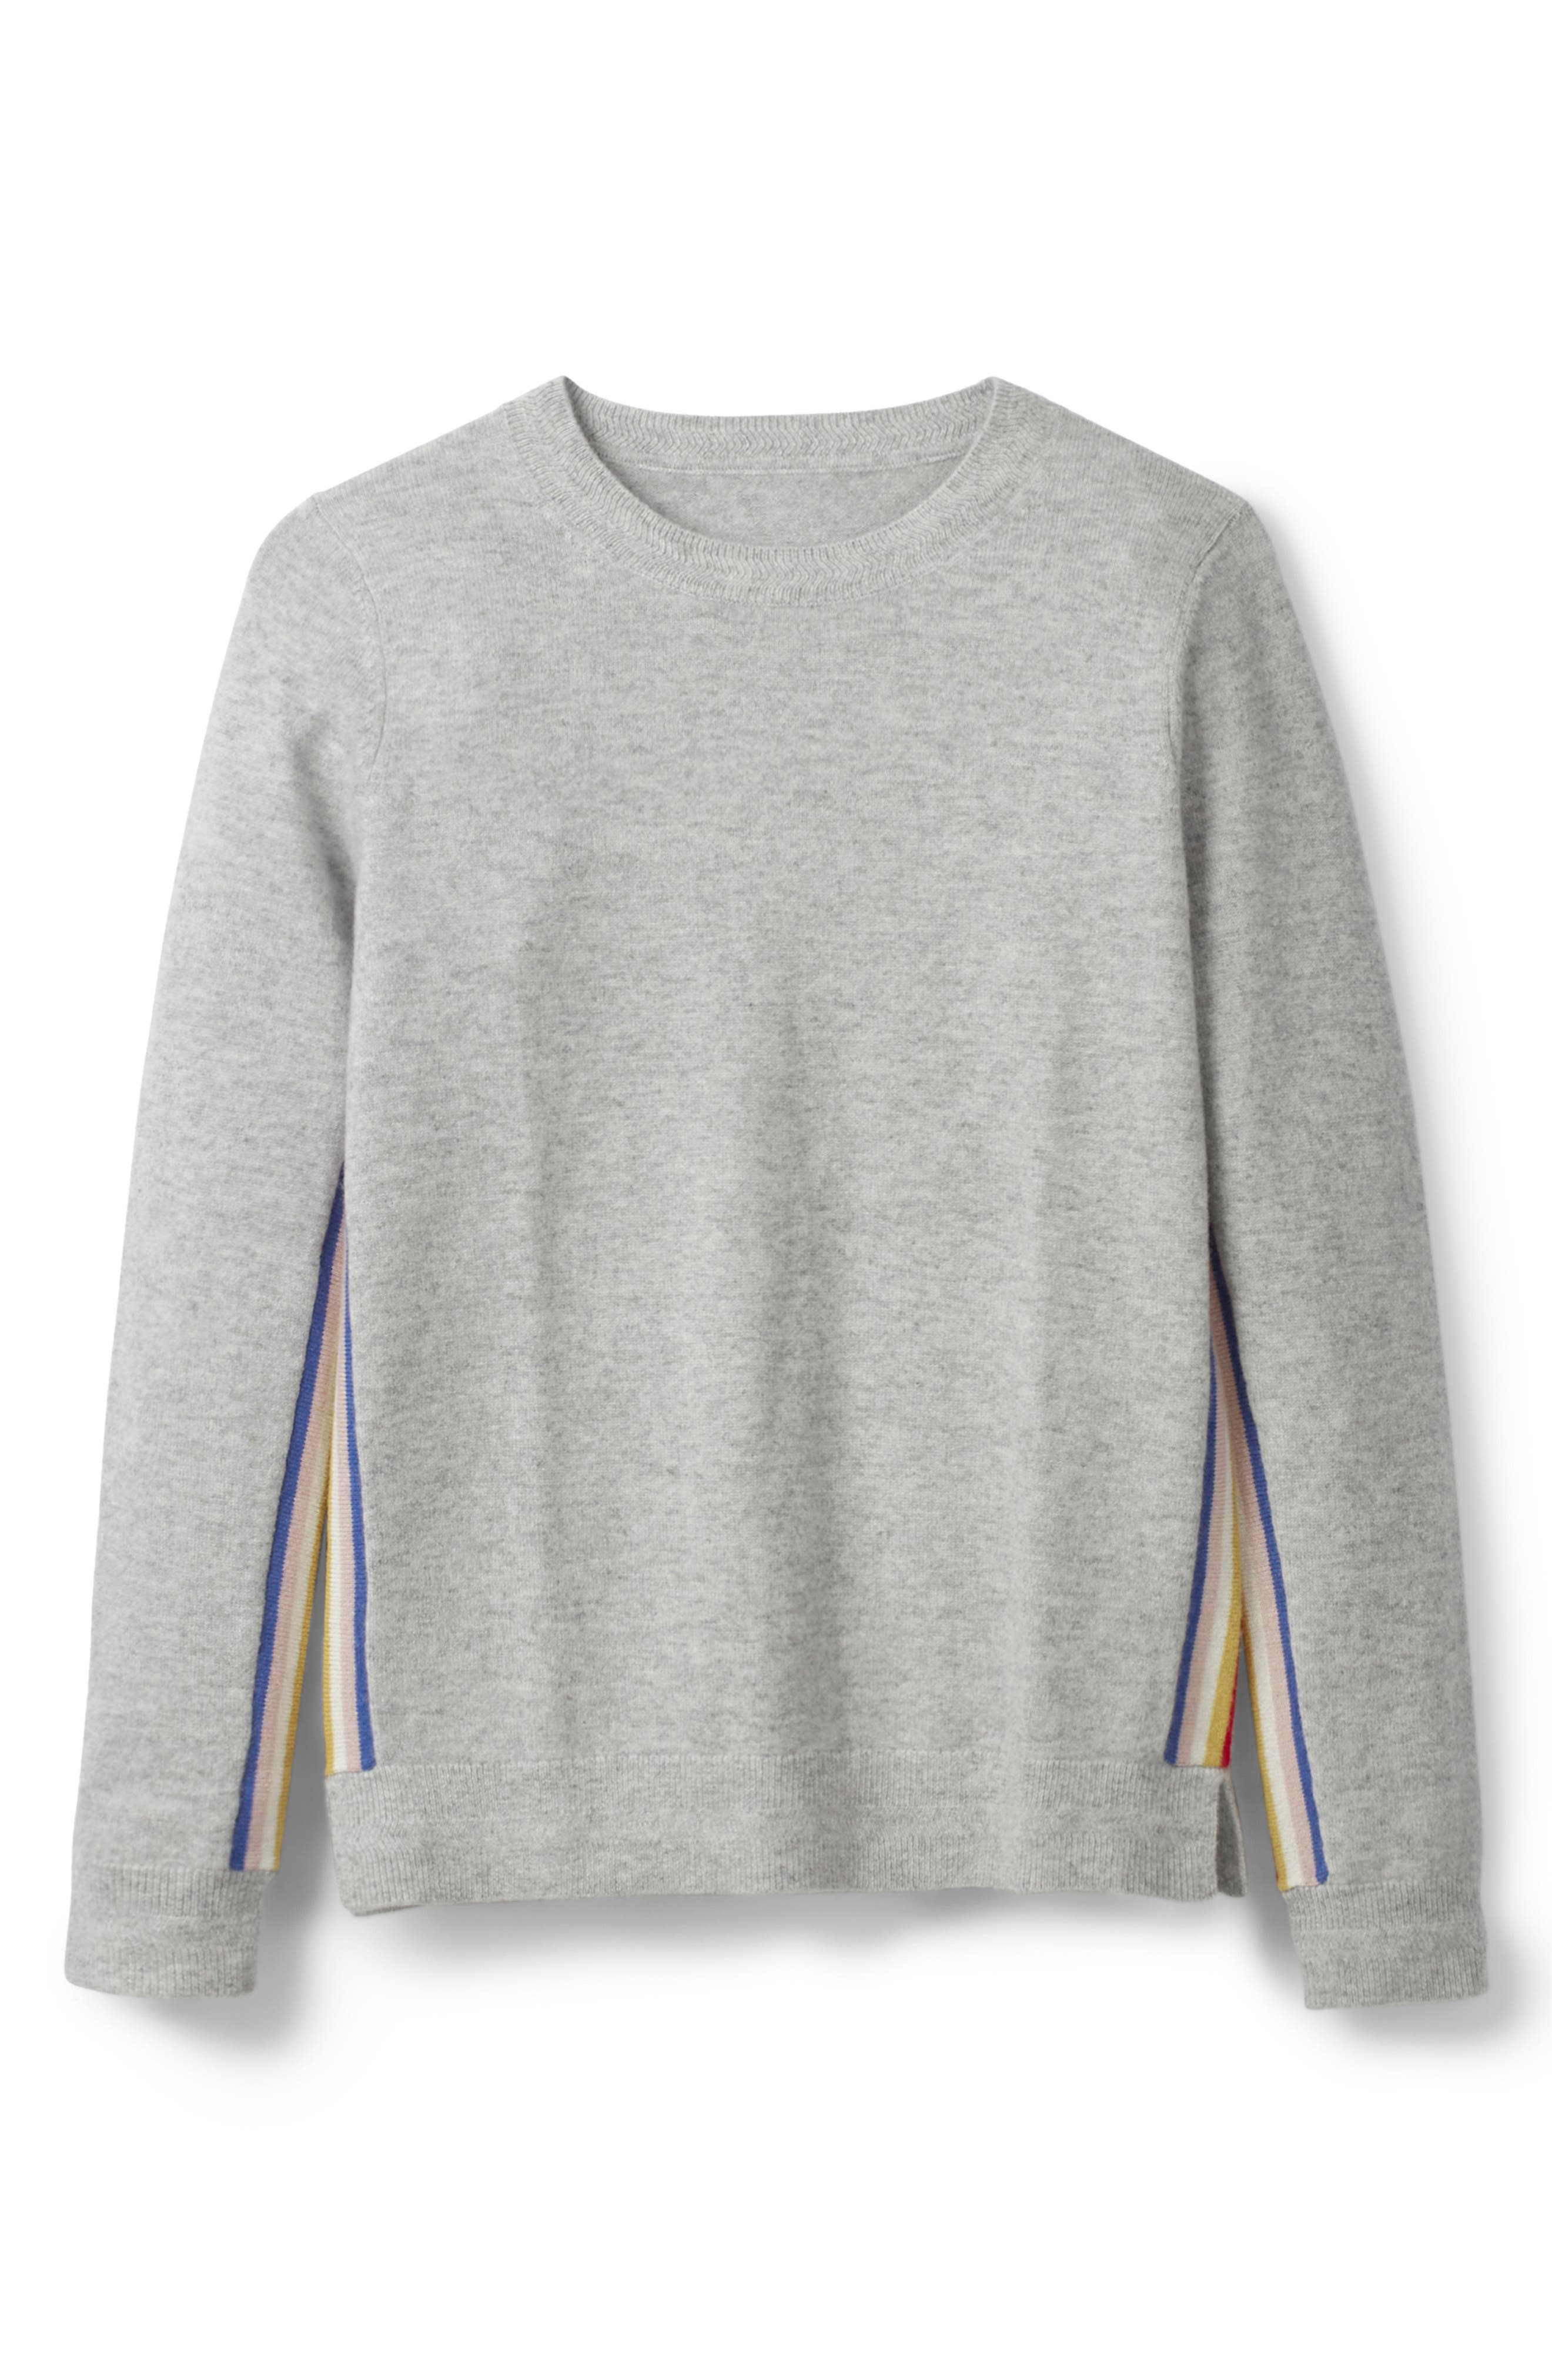 Cashmere Sweater,                             Alternate thumbnail 4, color,                             034